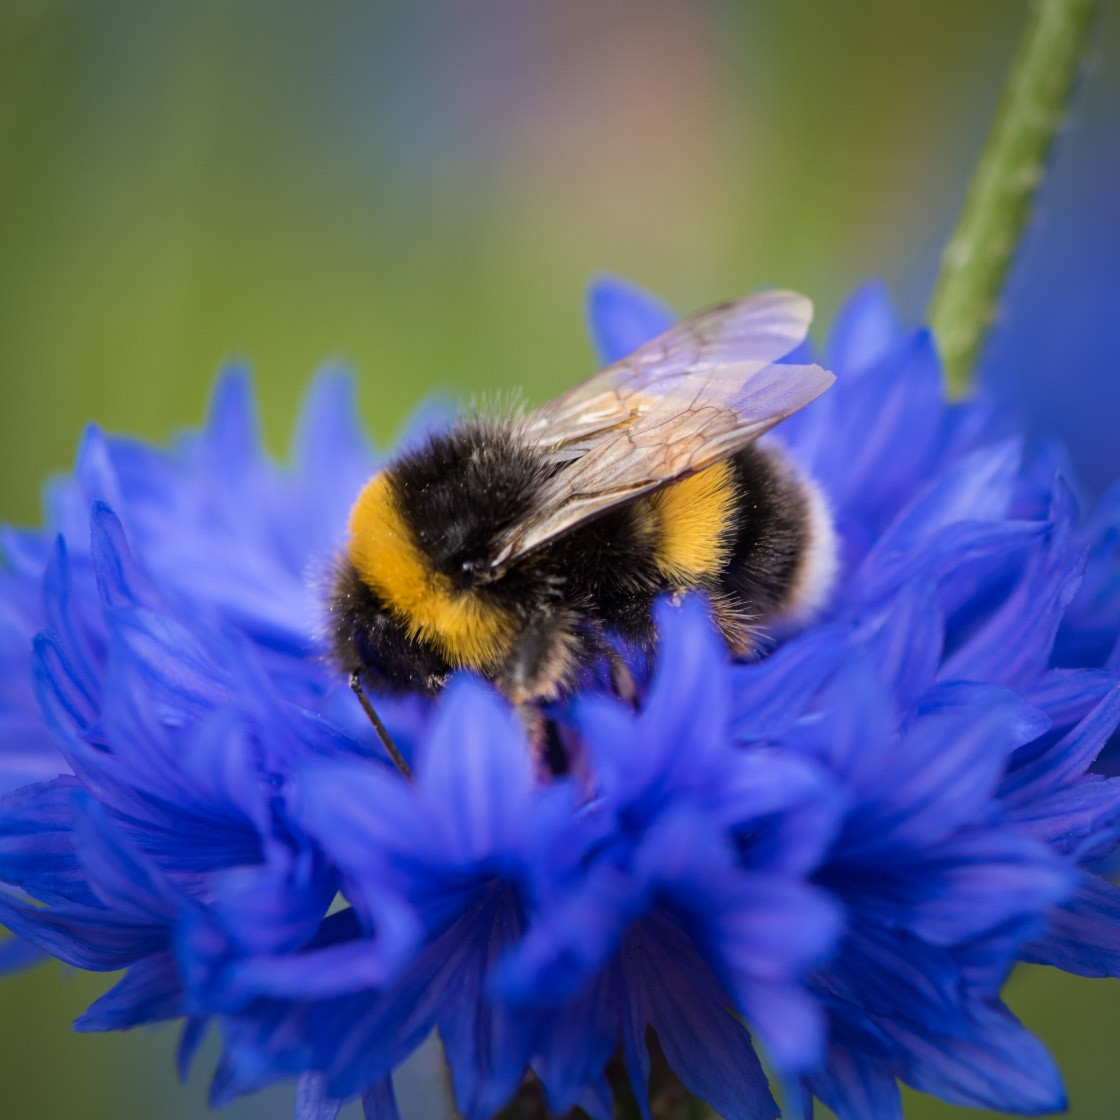 A bumblebee on a blue flower